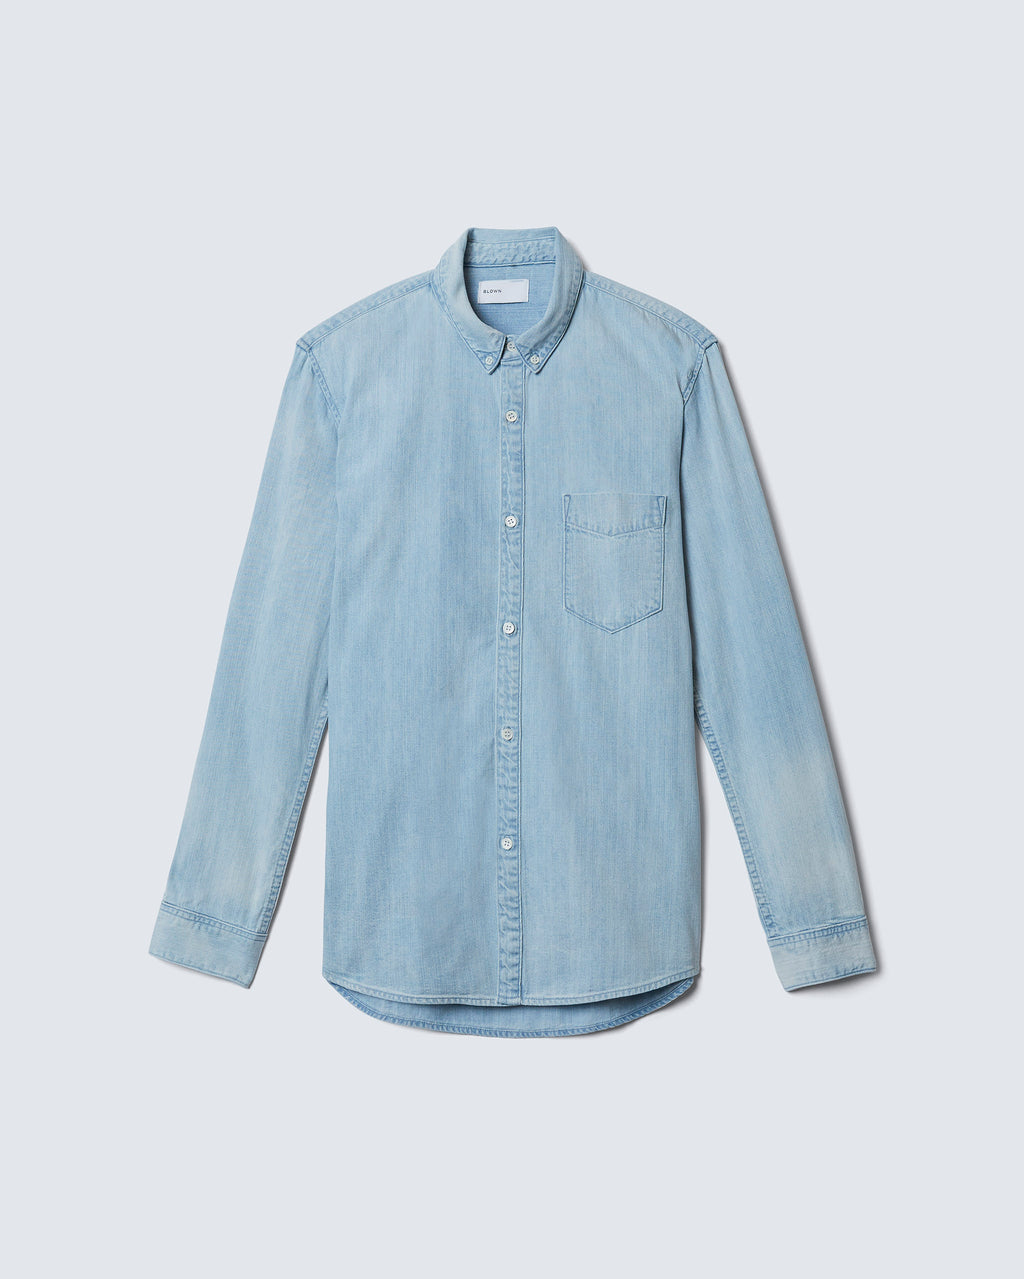 The Nathan Shirt in Light Vintage